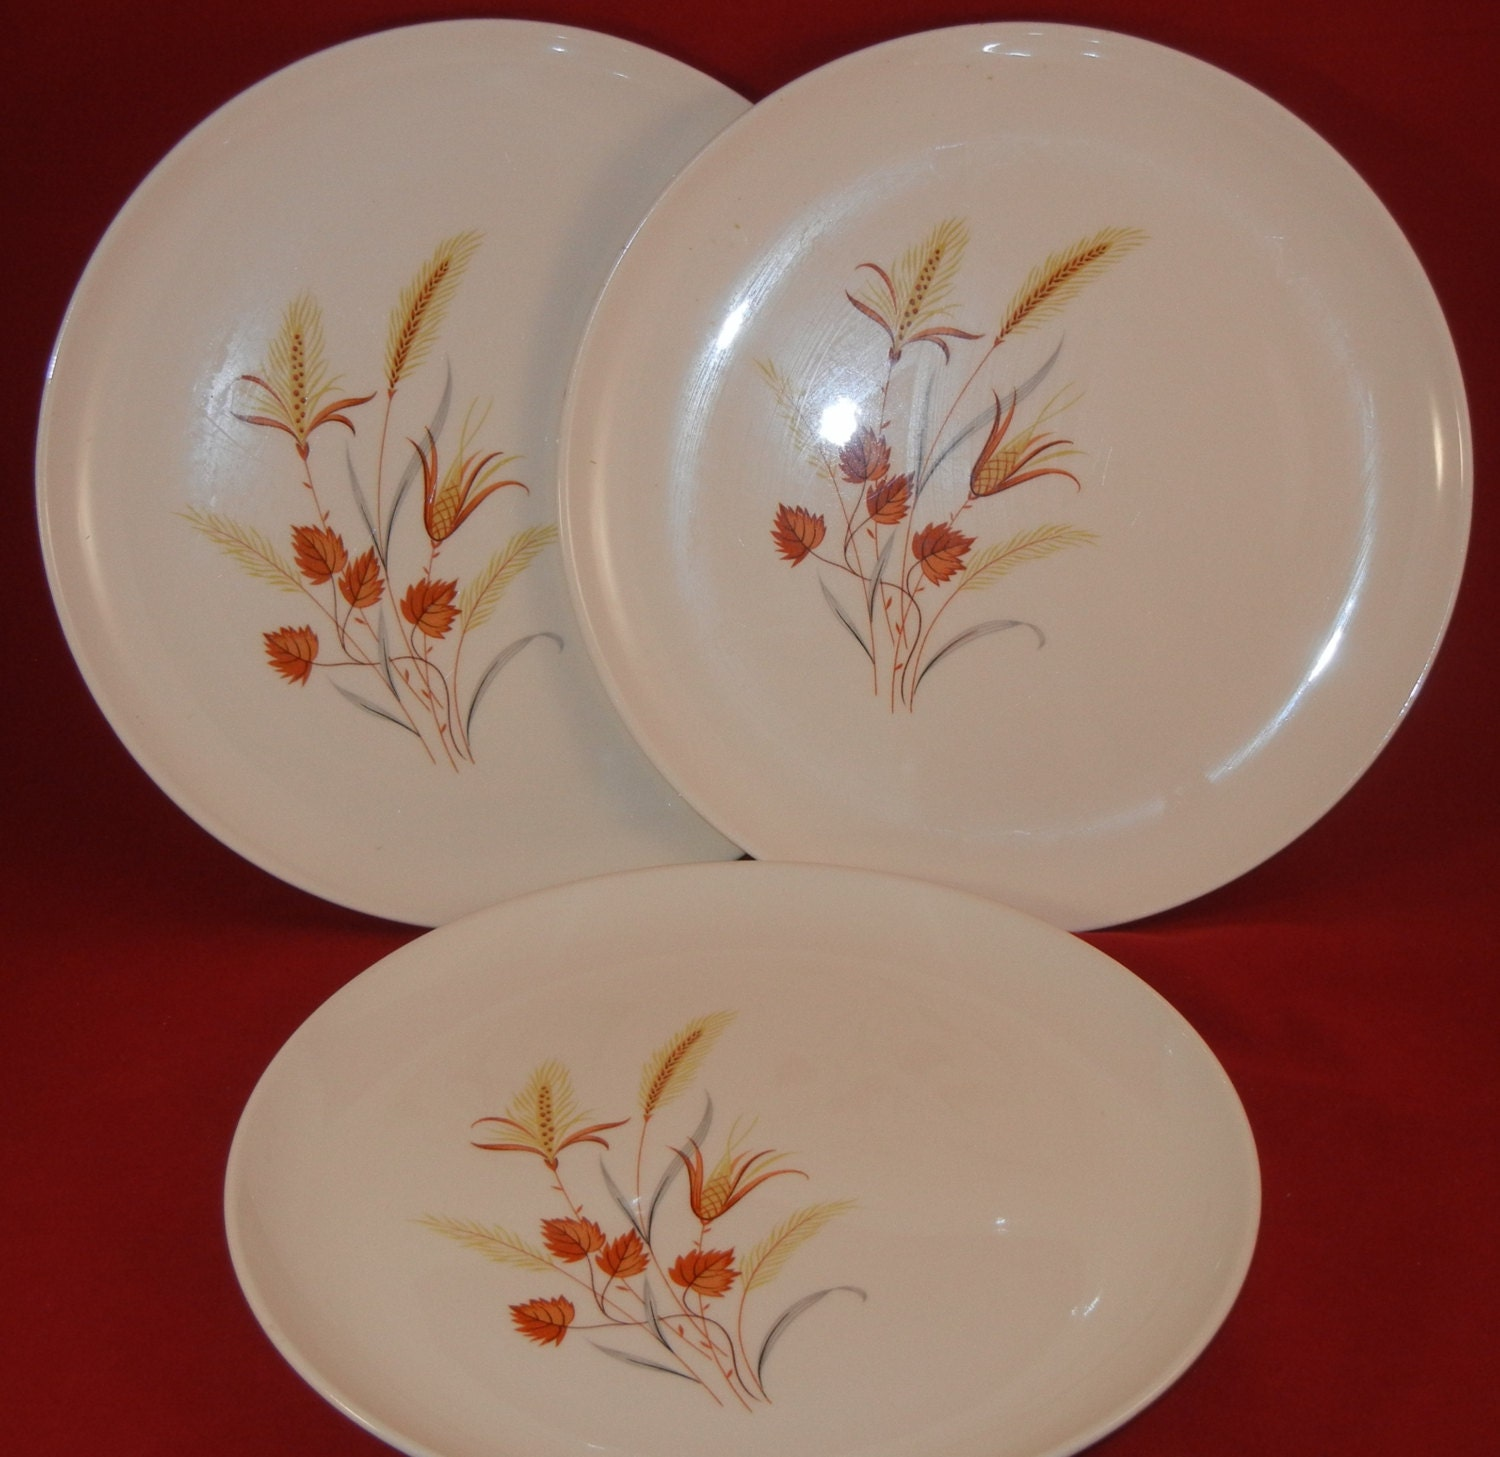 Harvest Dinnerware - Castrophotos